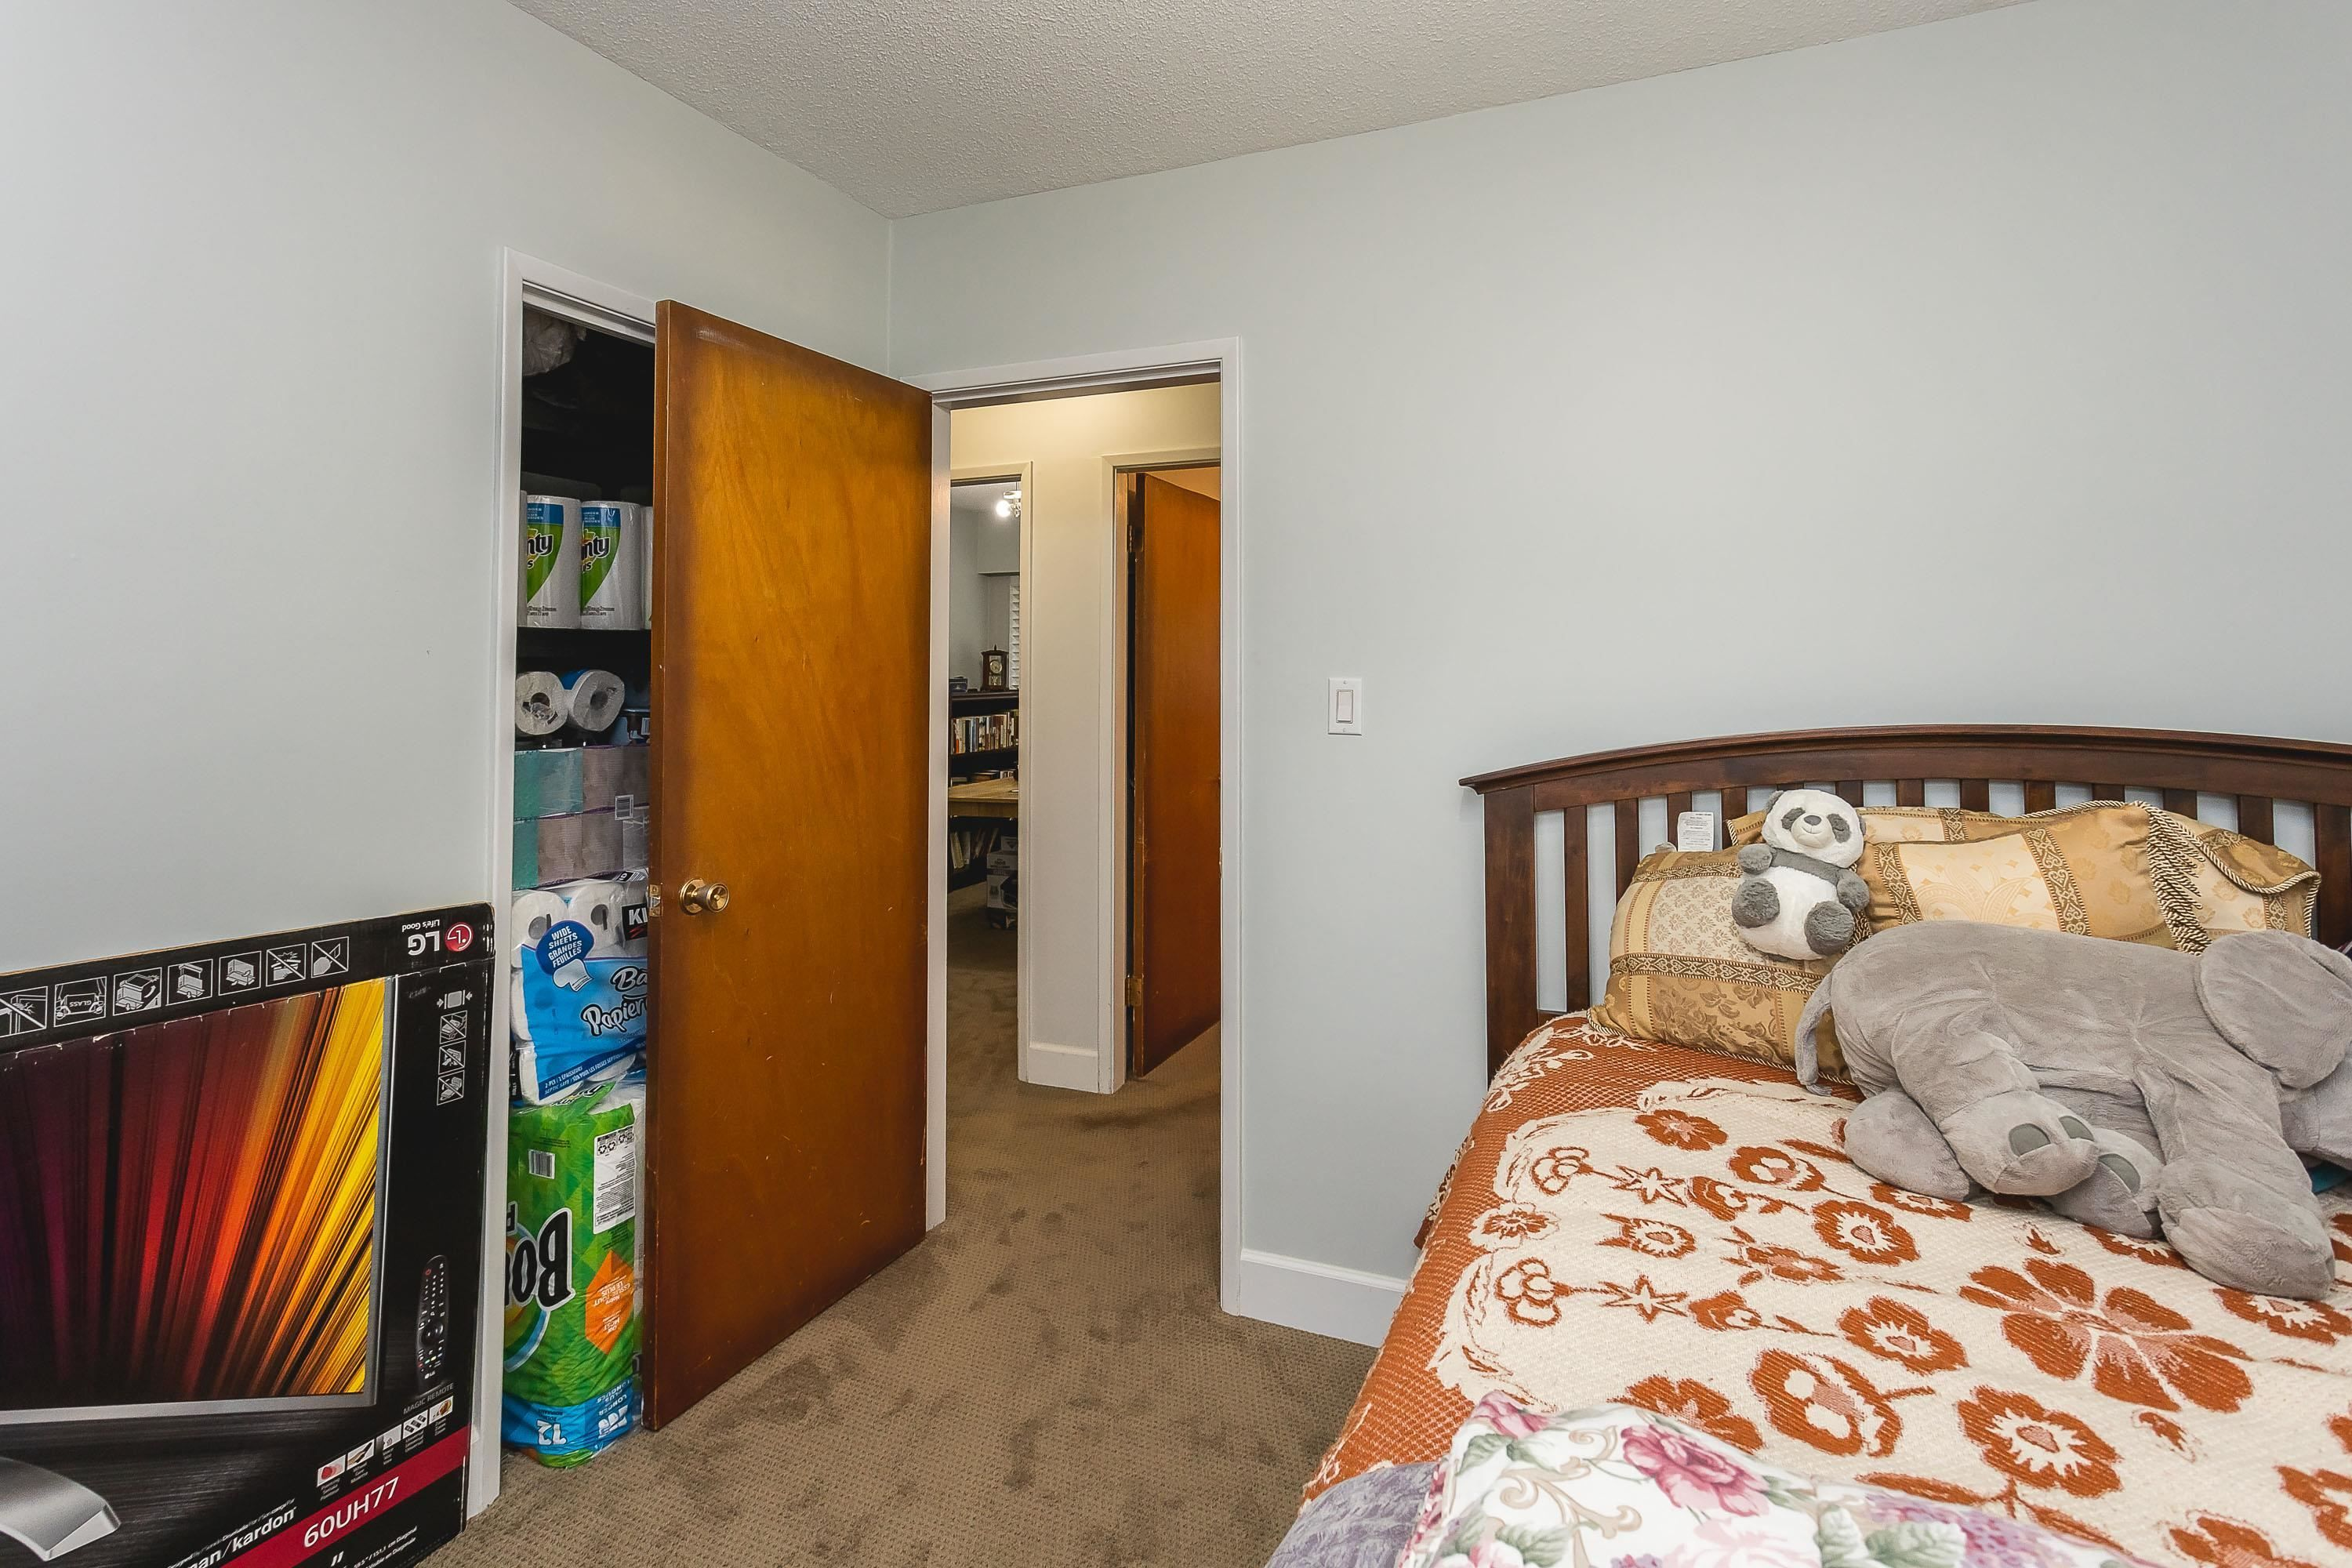 Photo 7: Photos: 3260 ULSTER Street in Port Coquitlam: Lincoln Park PQ House for sale : MLS®# R2613283